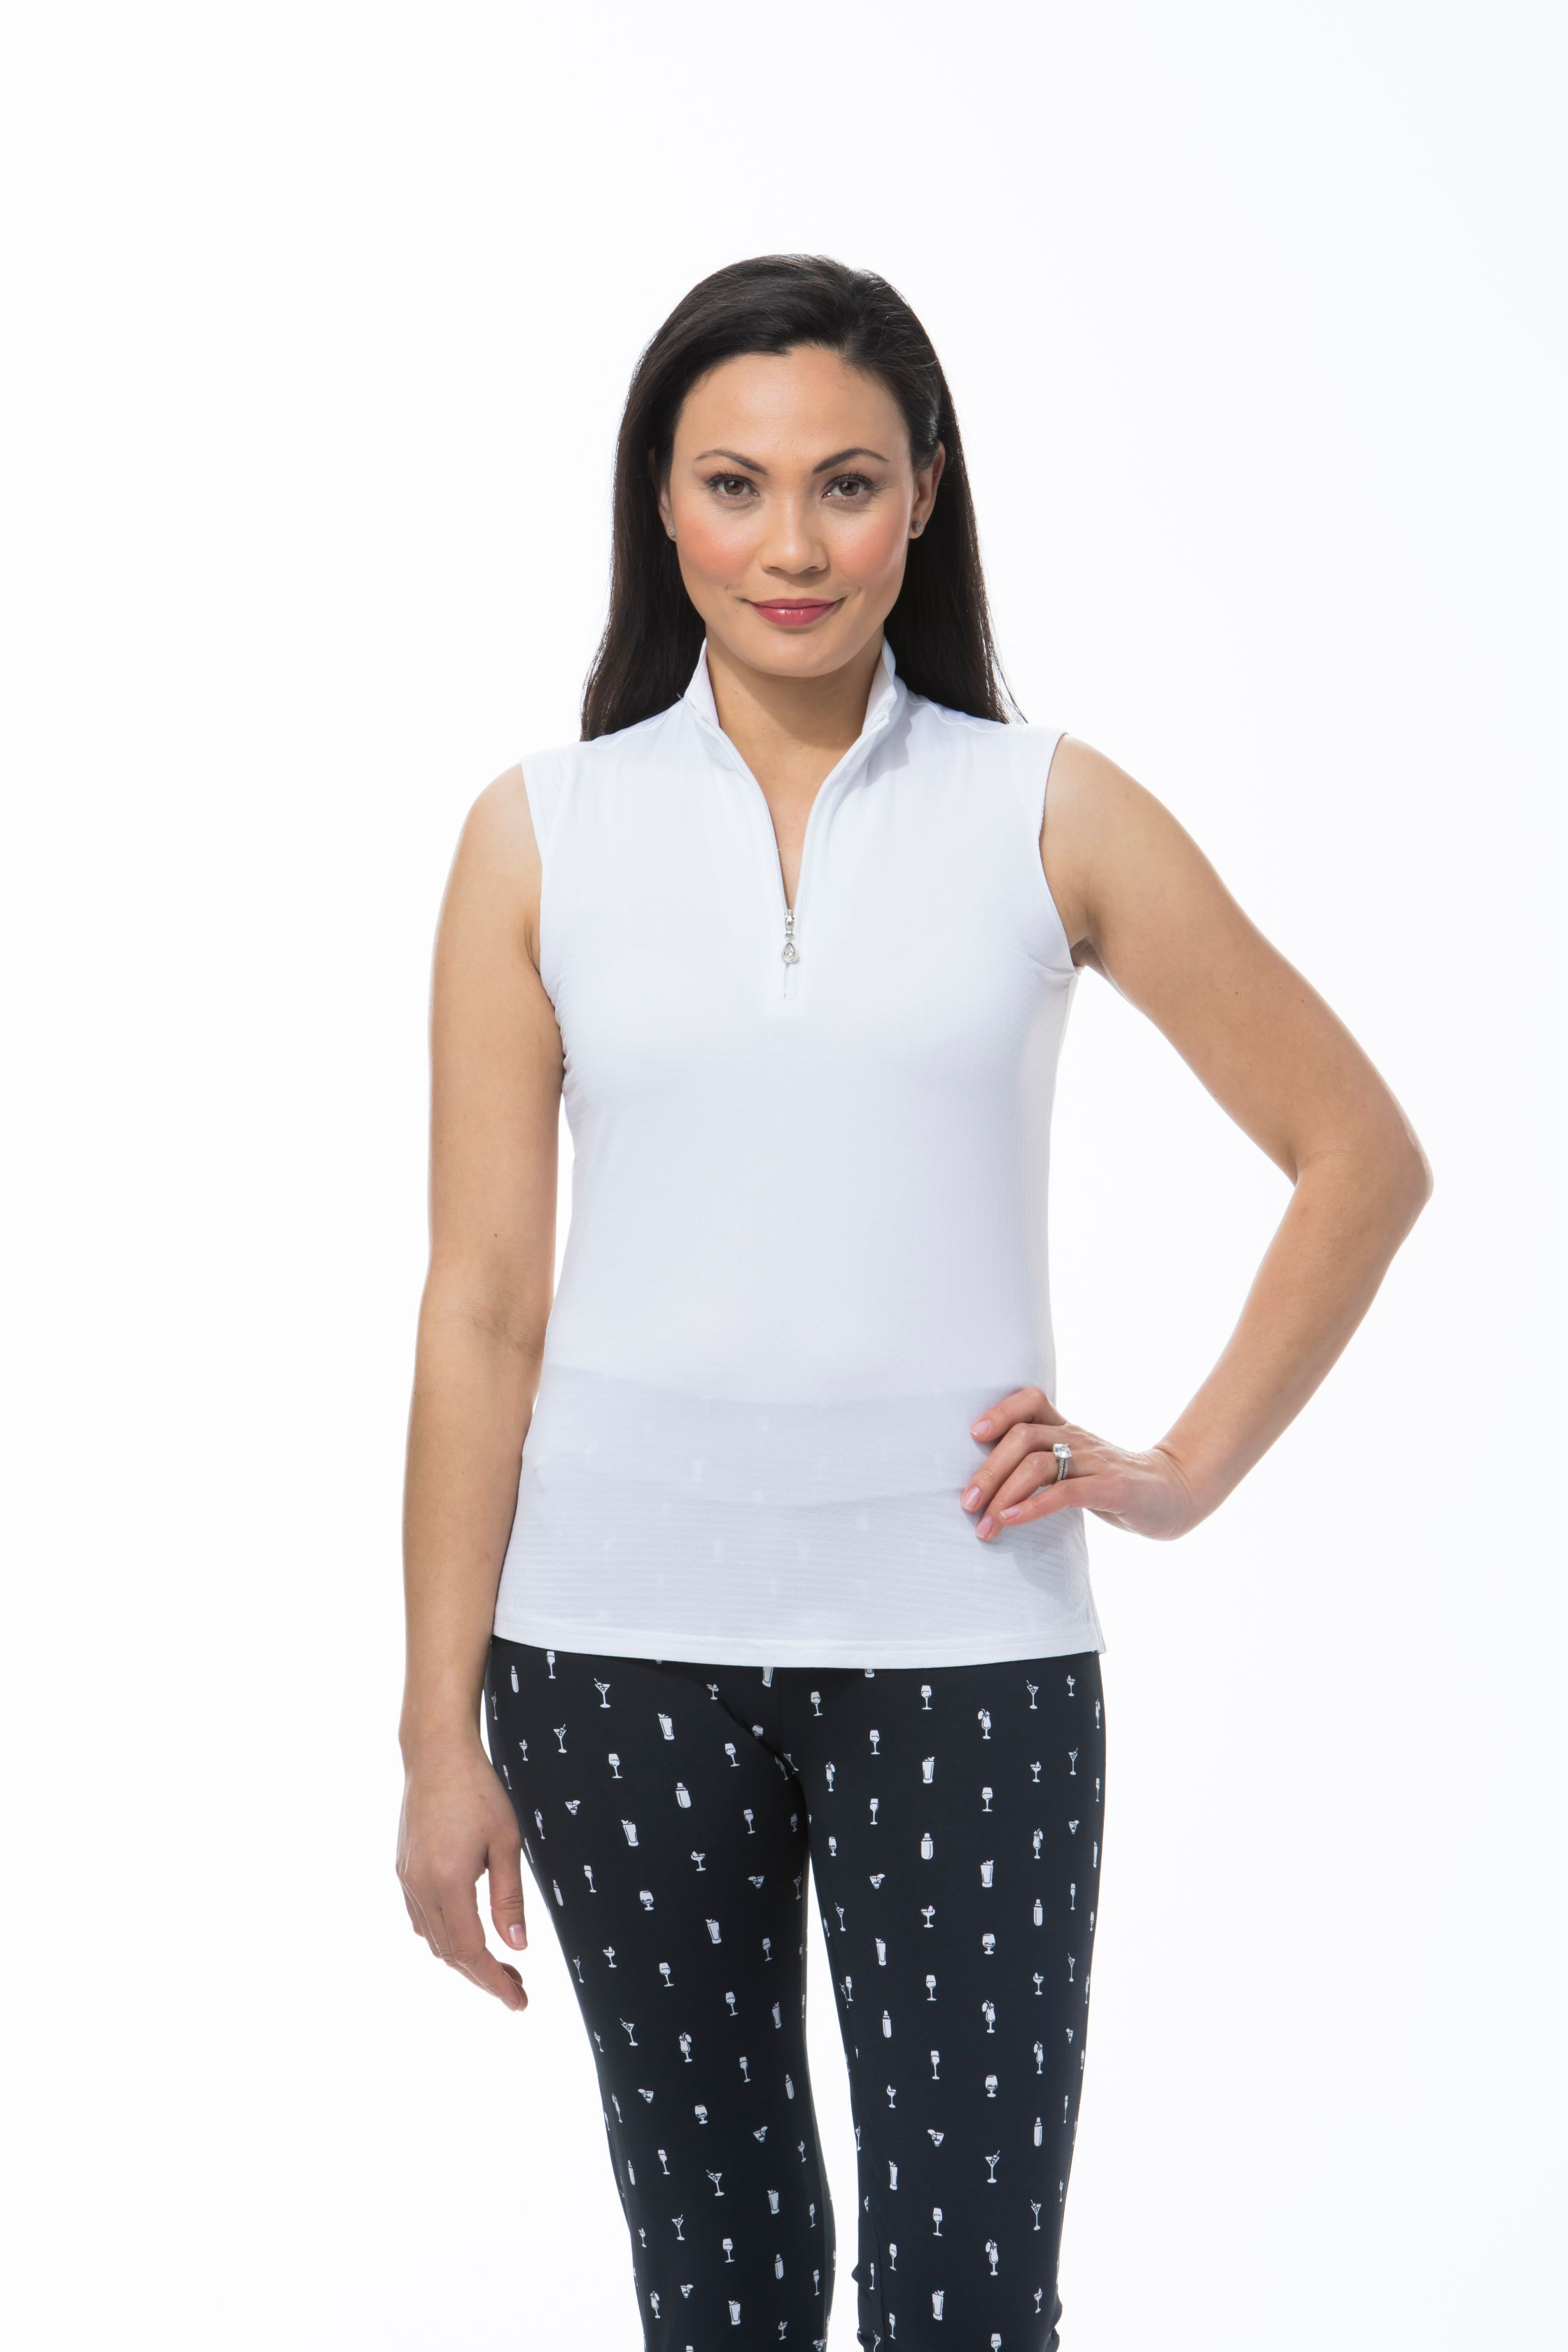 900617 SOLTEKICE SLEEVELESS MOCK. White